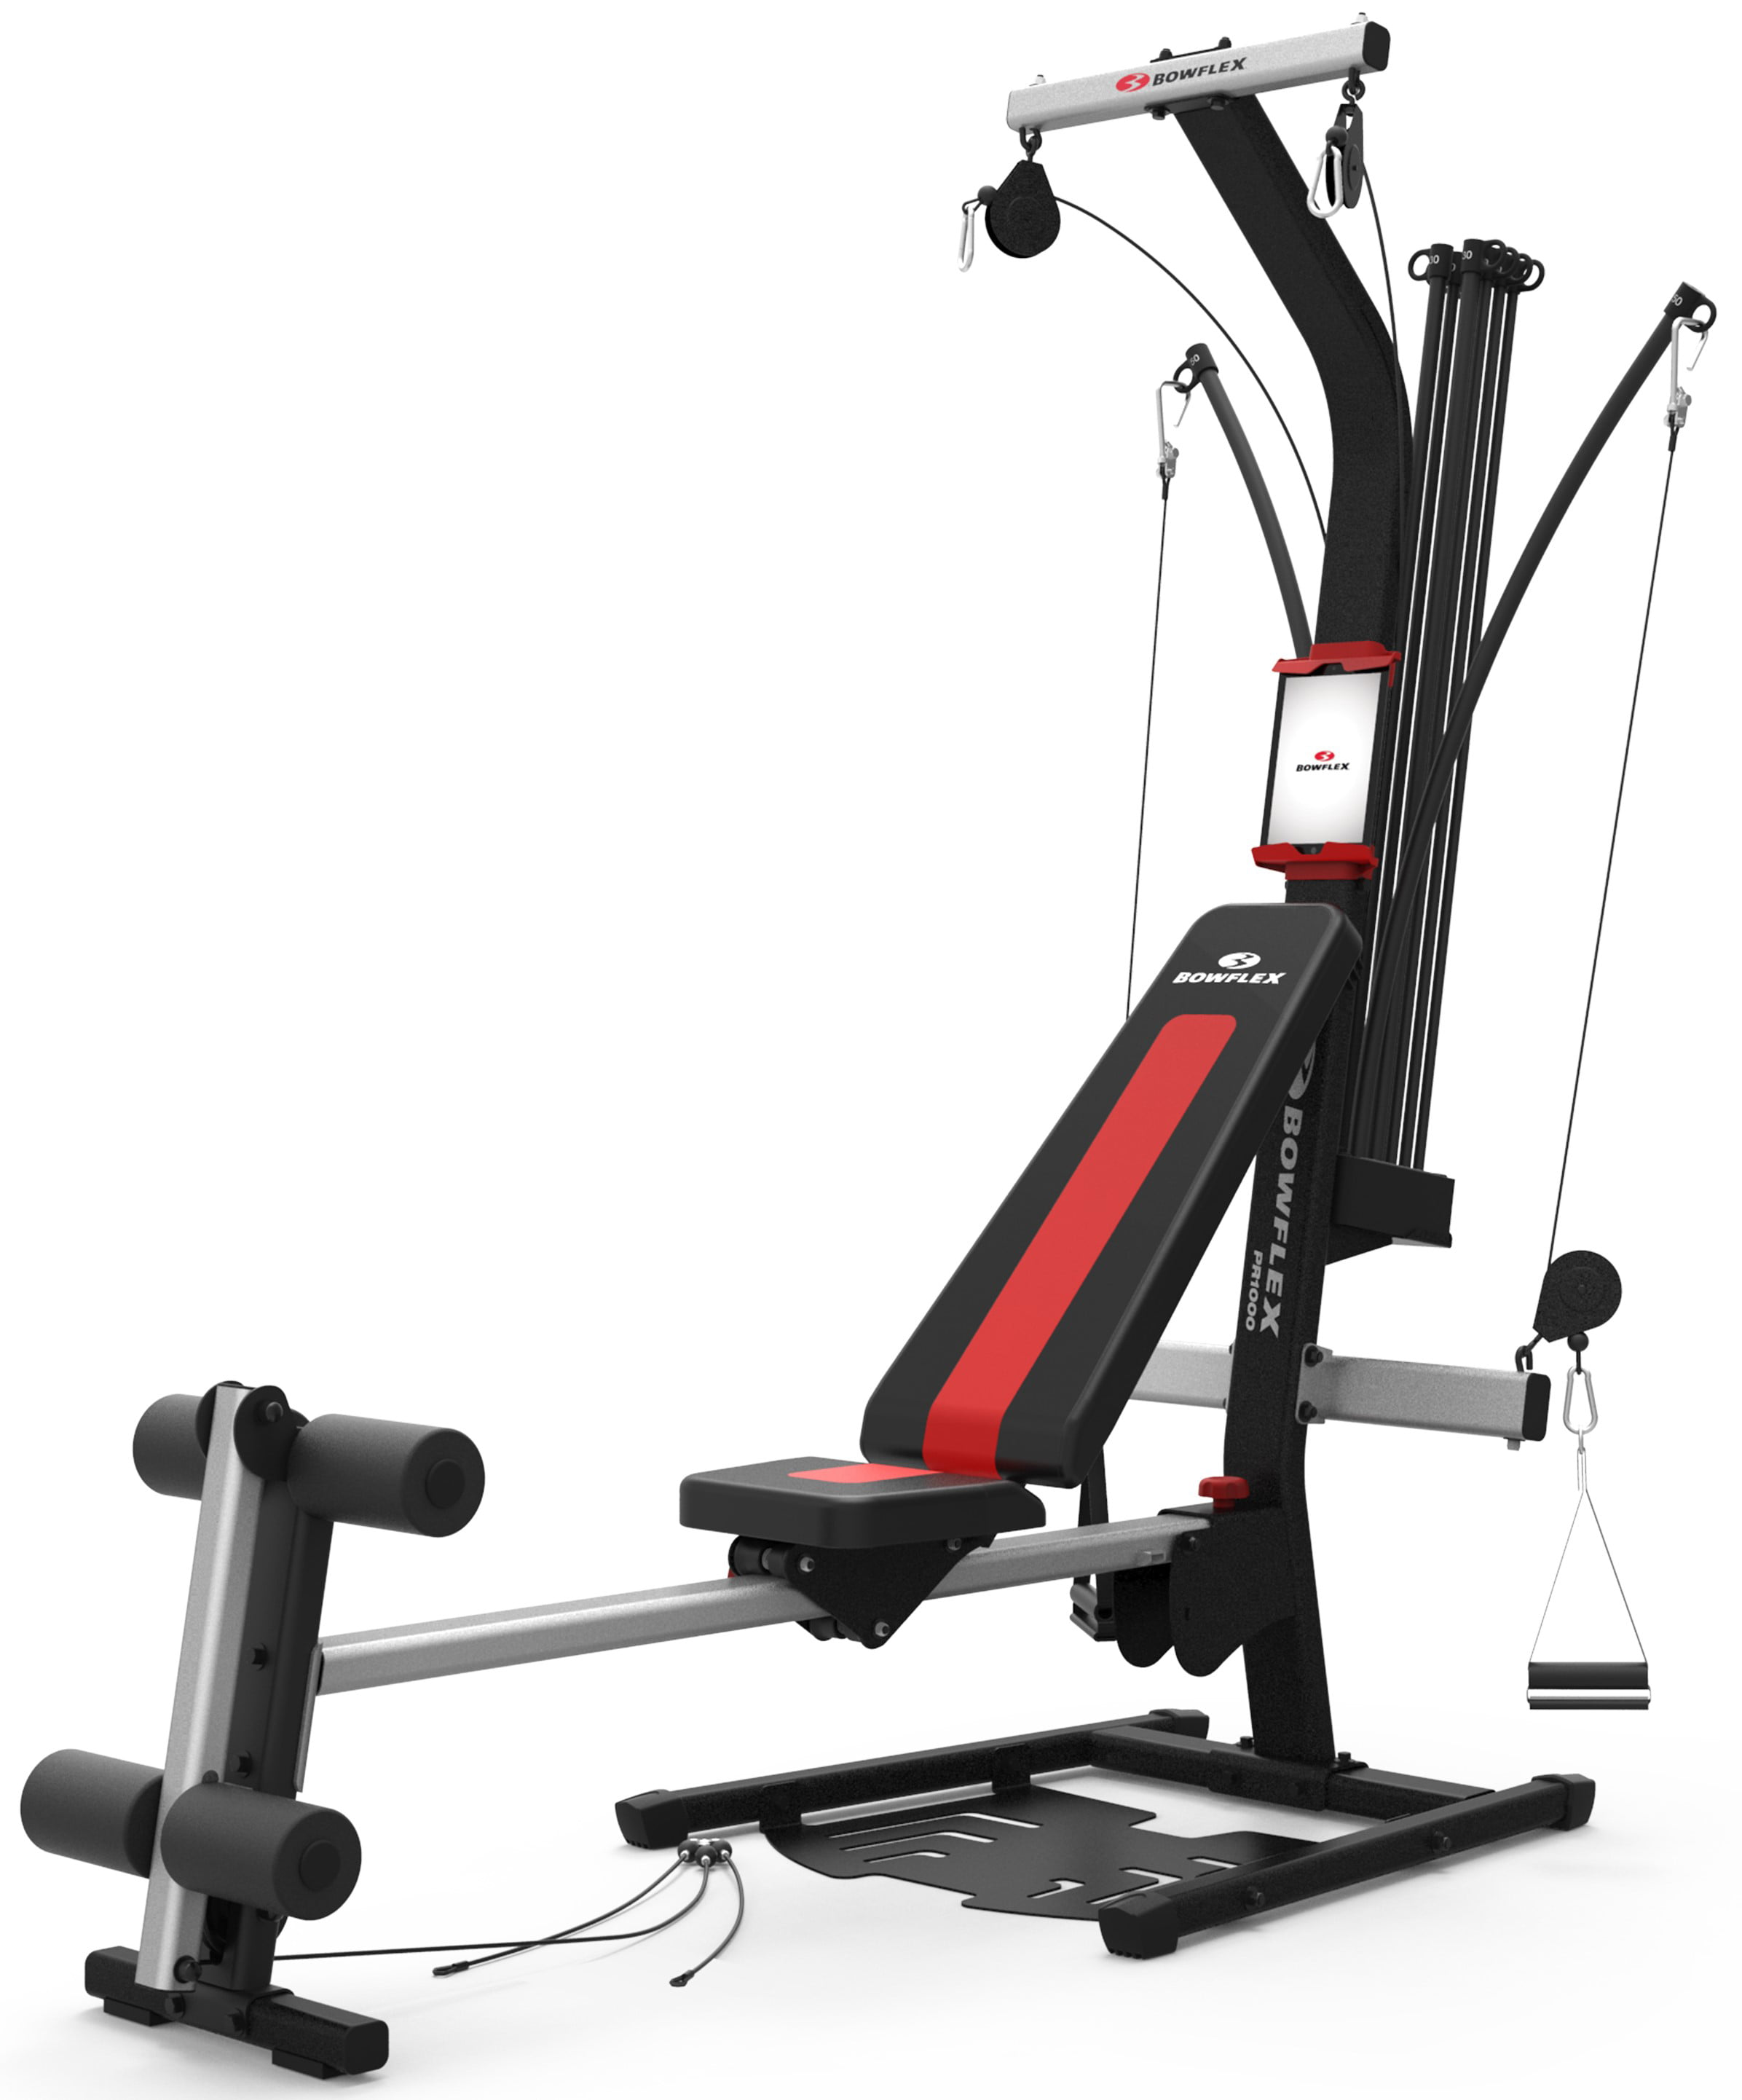 Bowflex Treadclimber On Ebay: Bowflex PR1000 Home Gym With 25+ Exercises And 200 Lbs